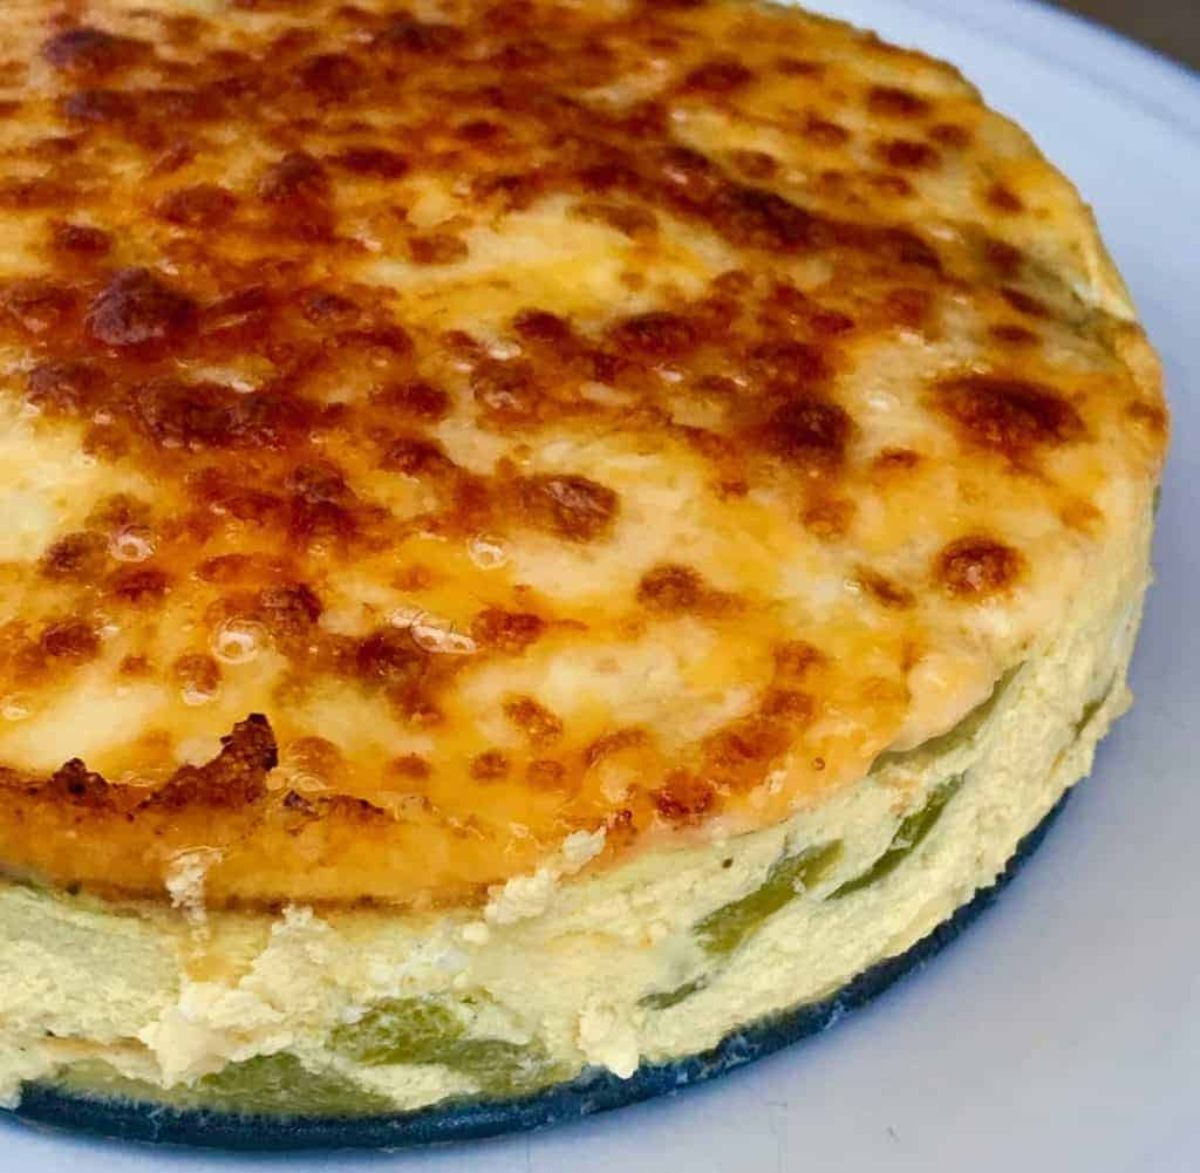 a partial shot of a fritatta with green beans in it and a caramalised cheese top